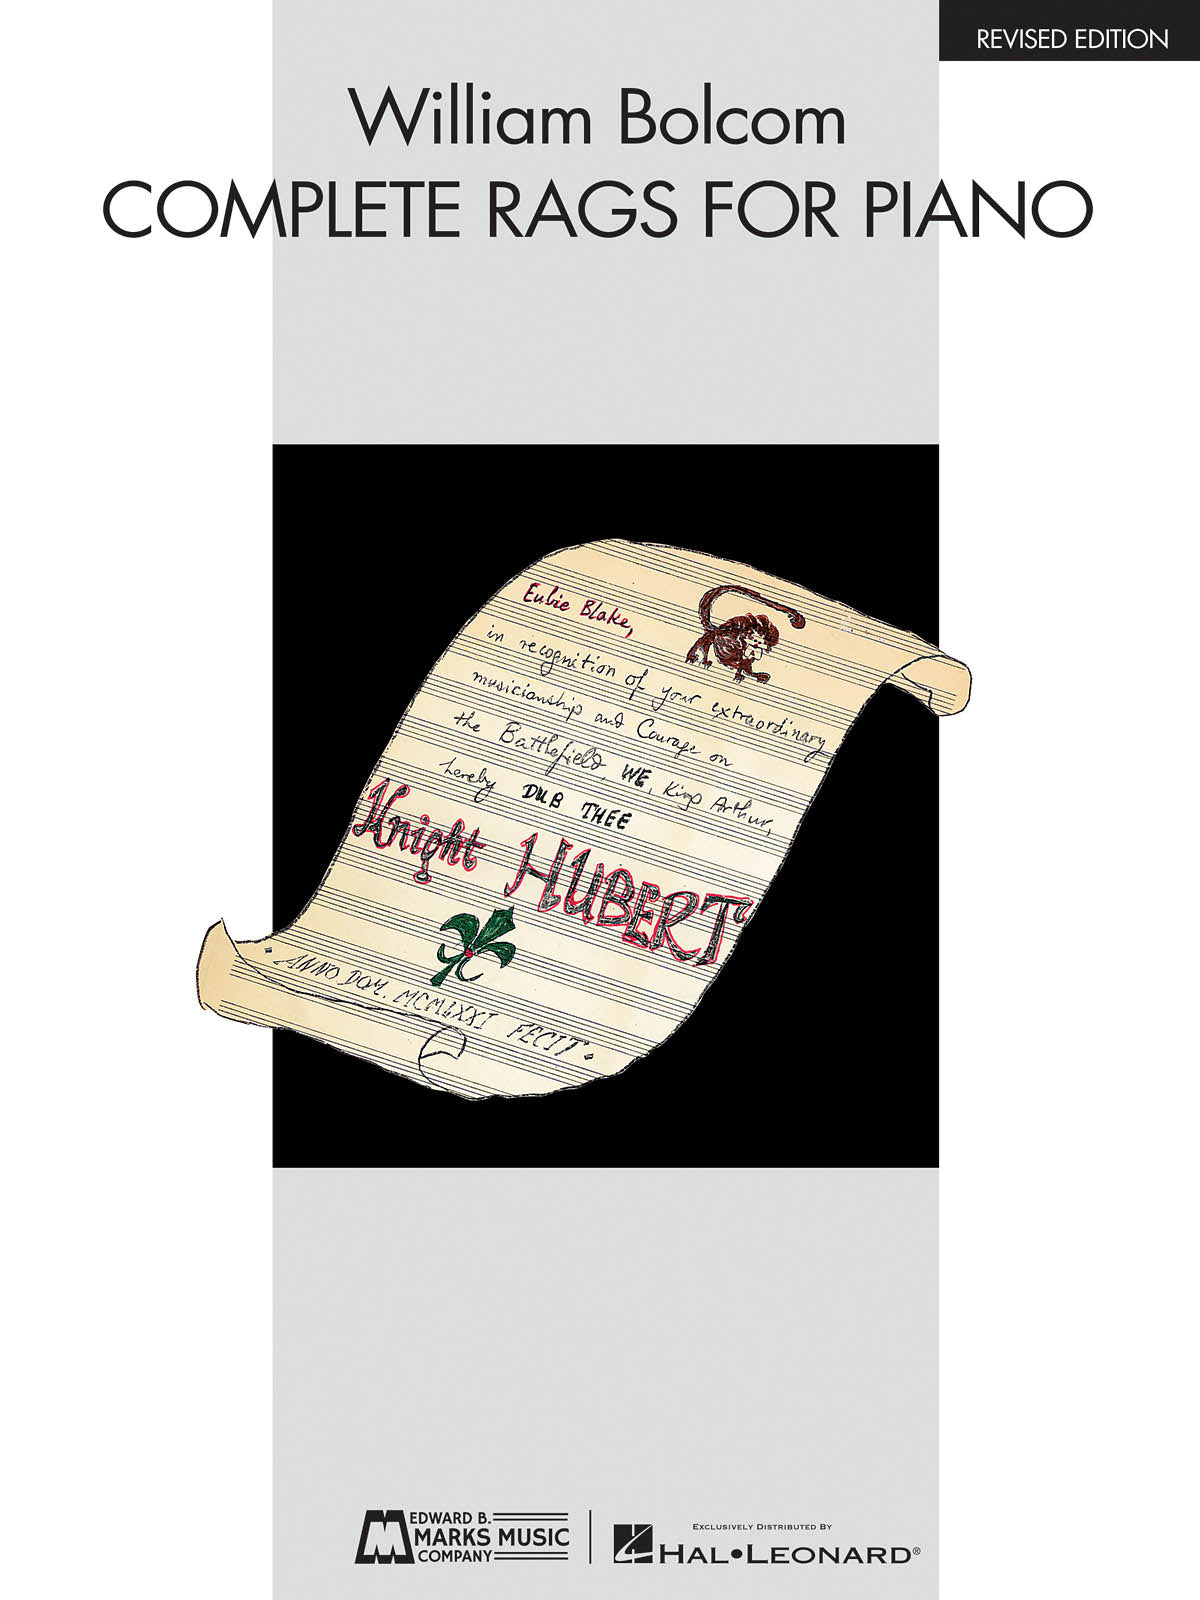 Bolcom: Complete Rags for Piano